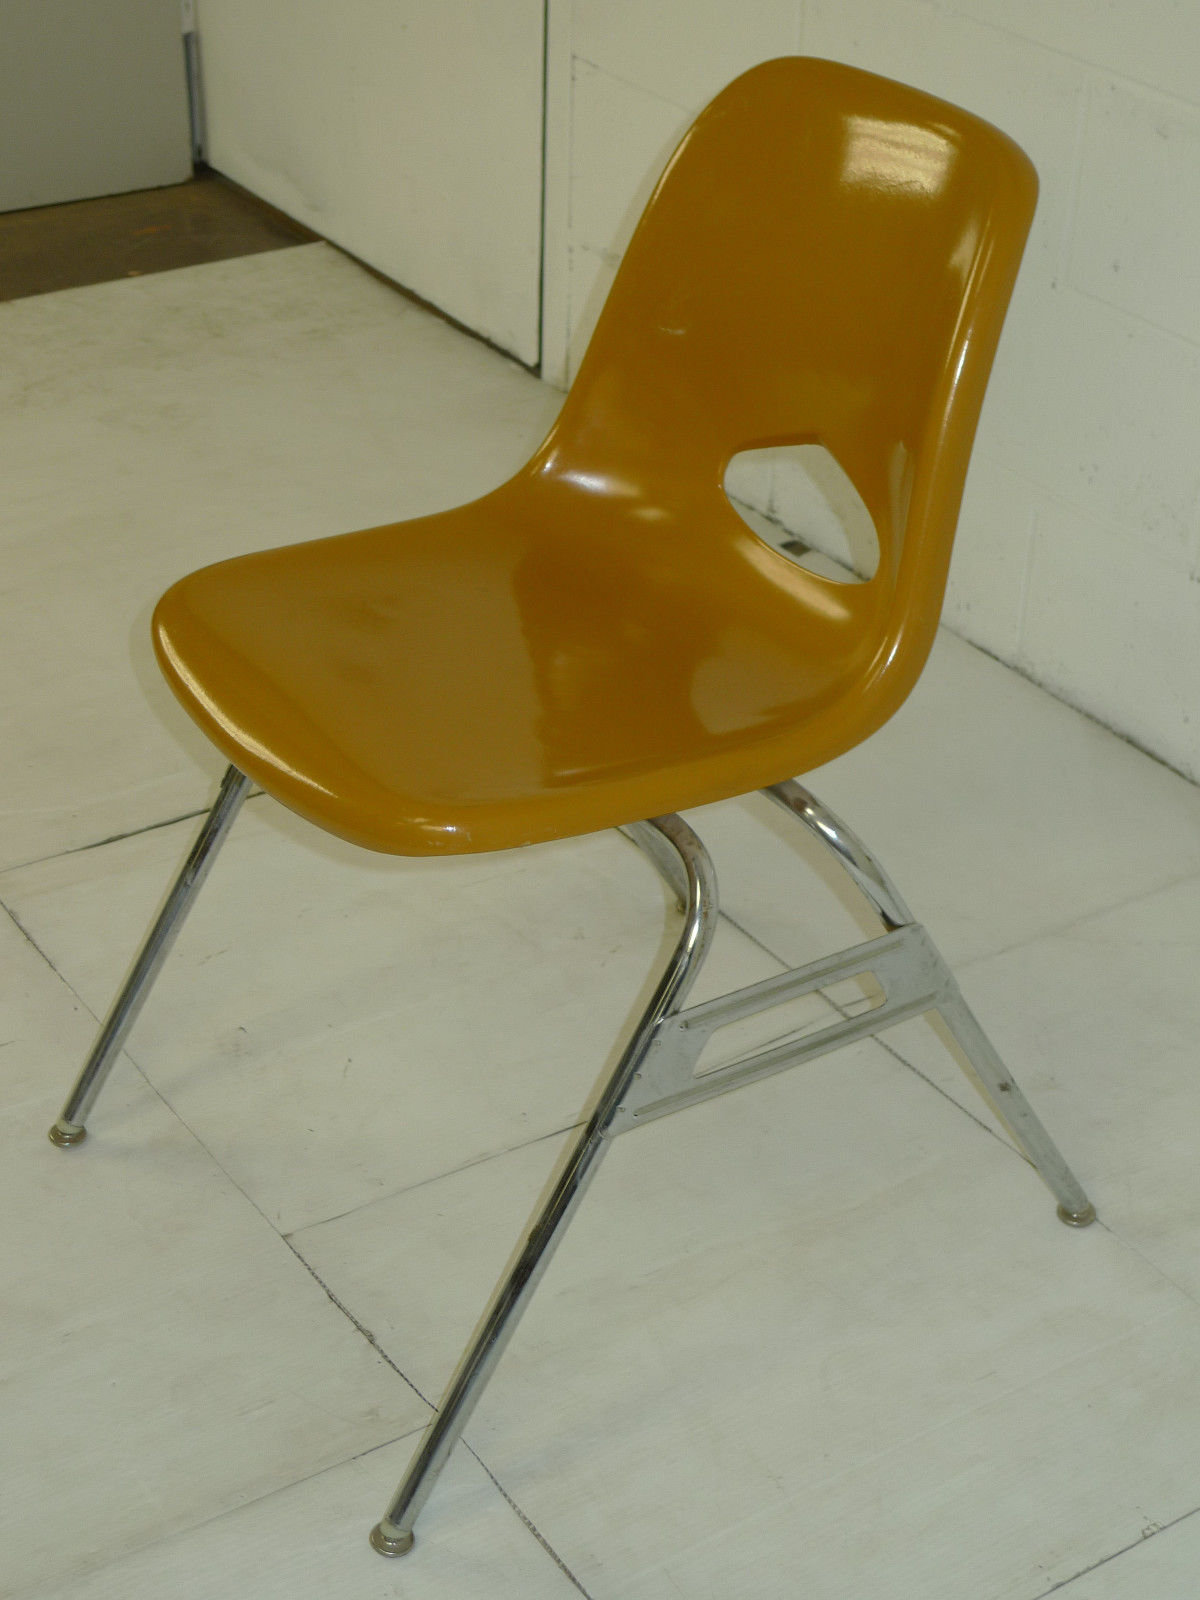 Brown Fiberglass Space Age Mid Century Modern Eames Era Chairs